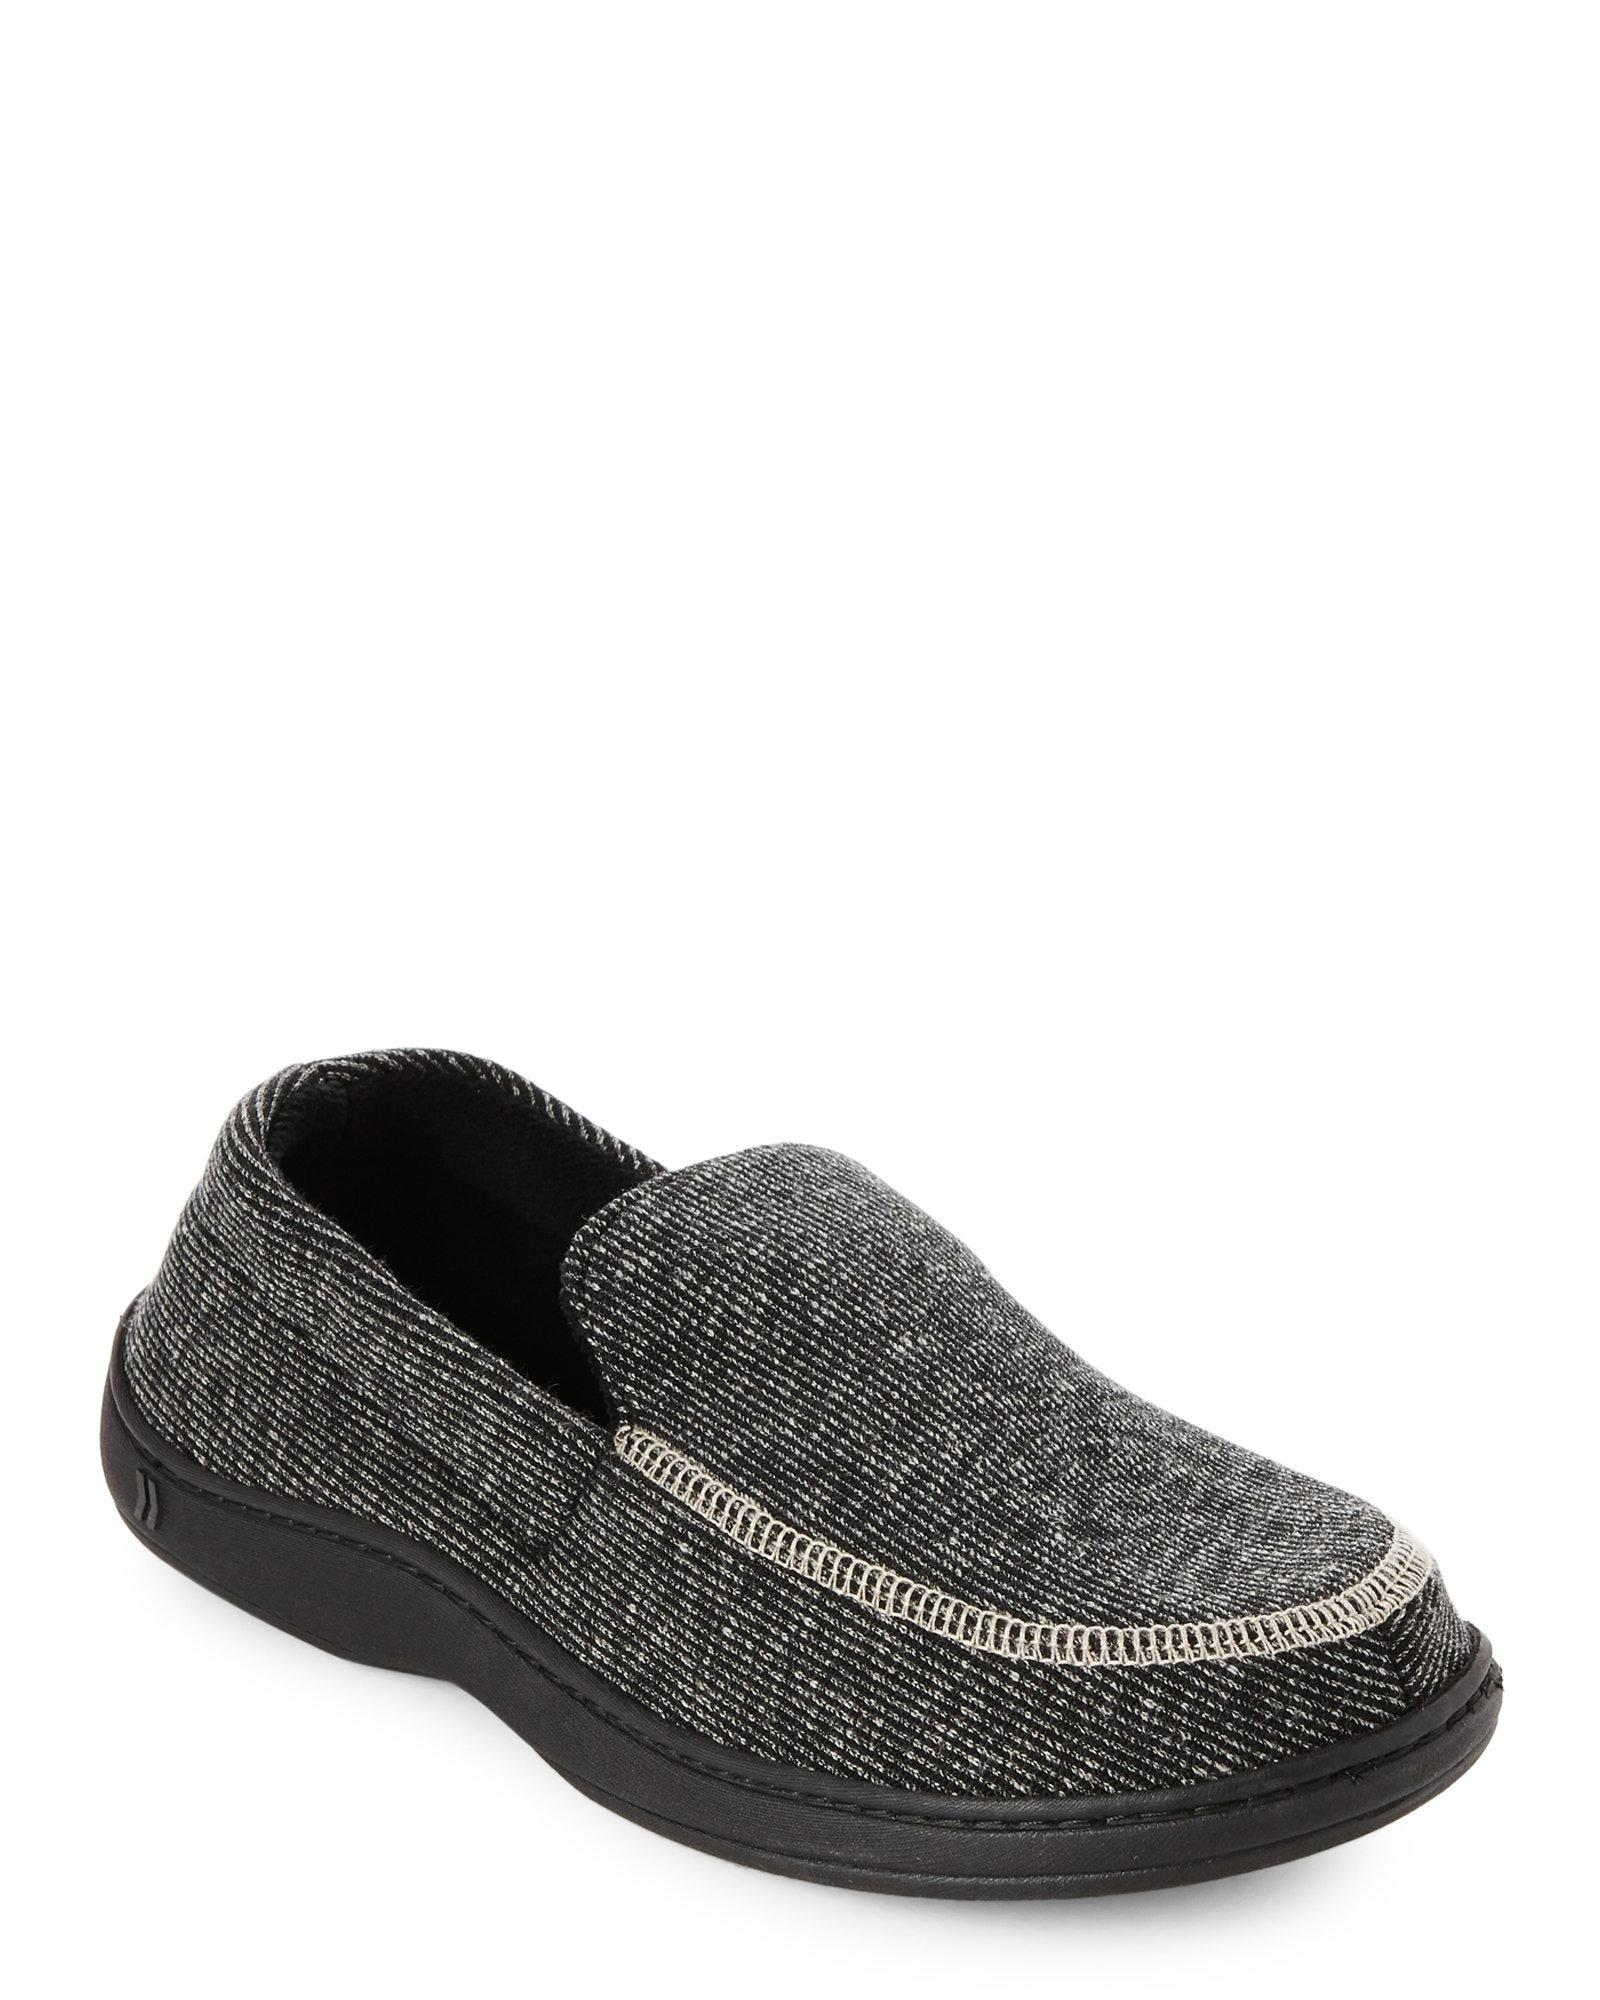 Lyst - Isotoner Black Stripe Moccasin Slippers in Black for Men 24d1b0e938e1